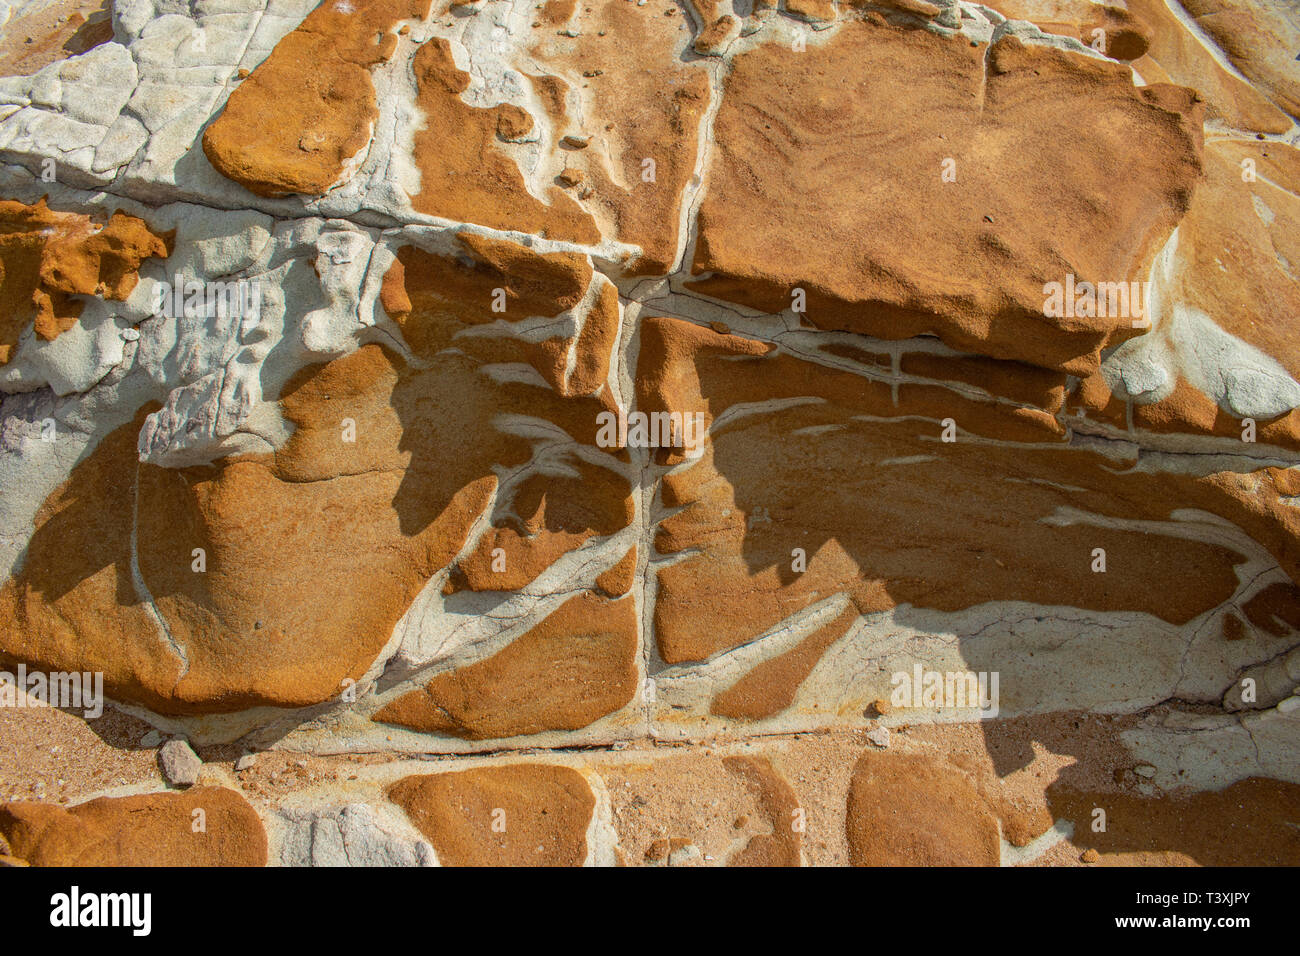 A limestone rock outcrop with different bands of rock, color and patterns - Stock Image